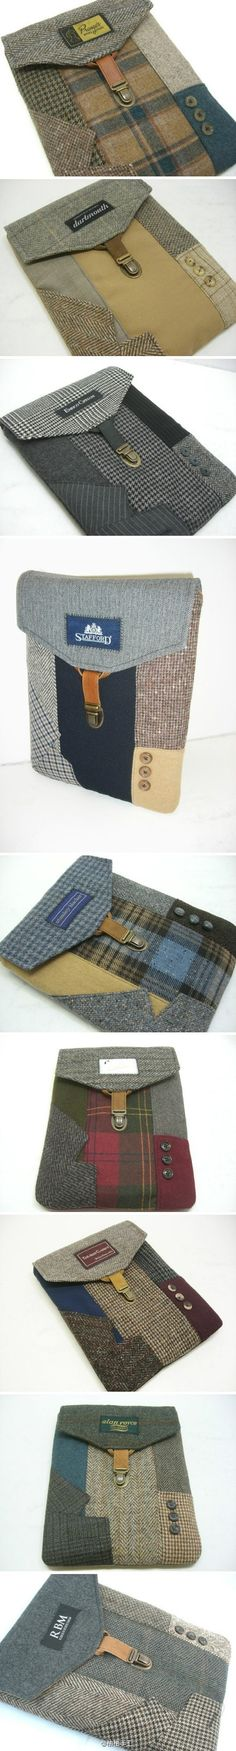 ipad or notebook cover, use scraps of wool fabric